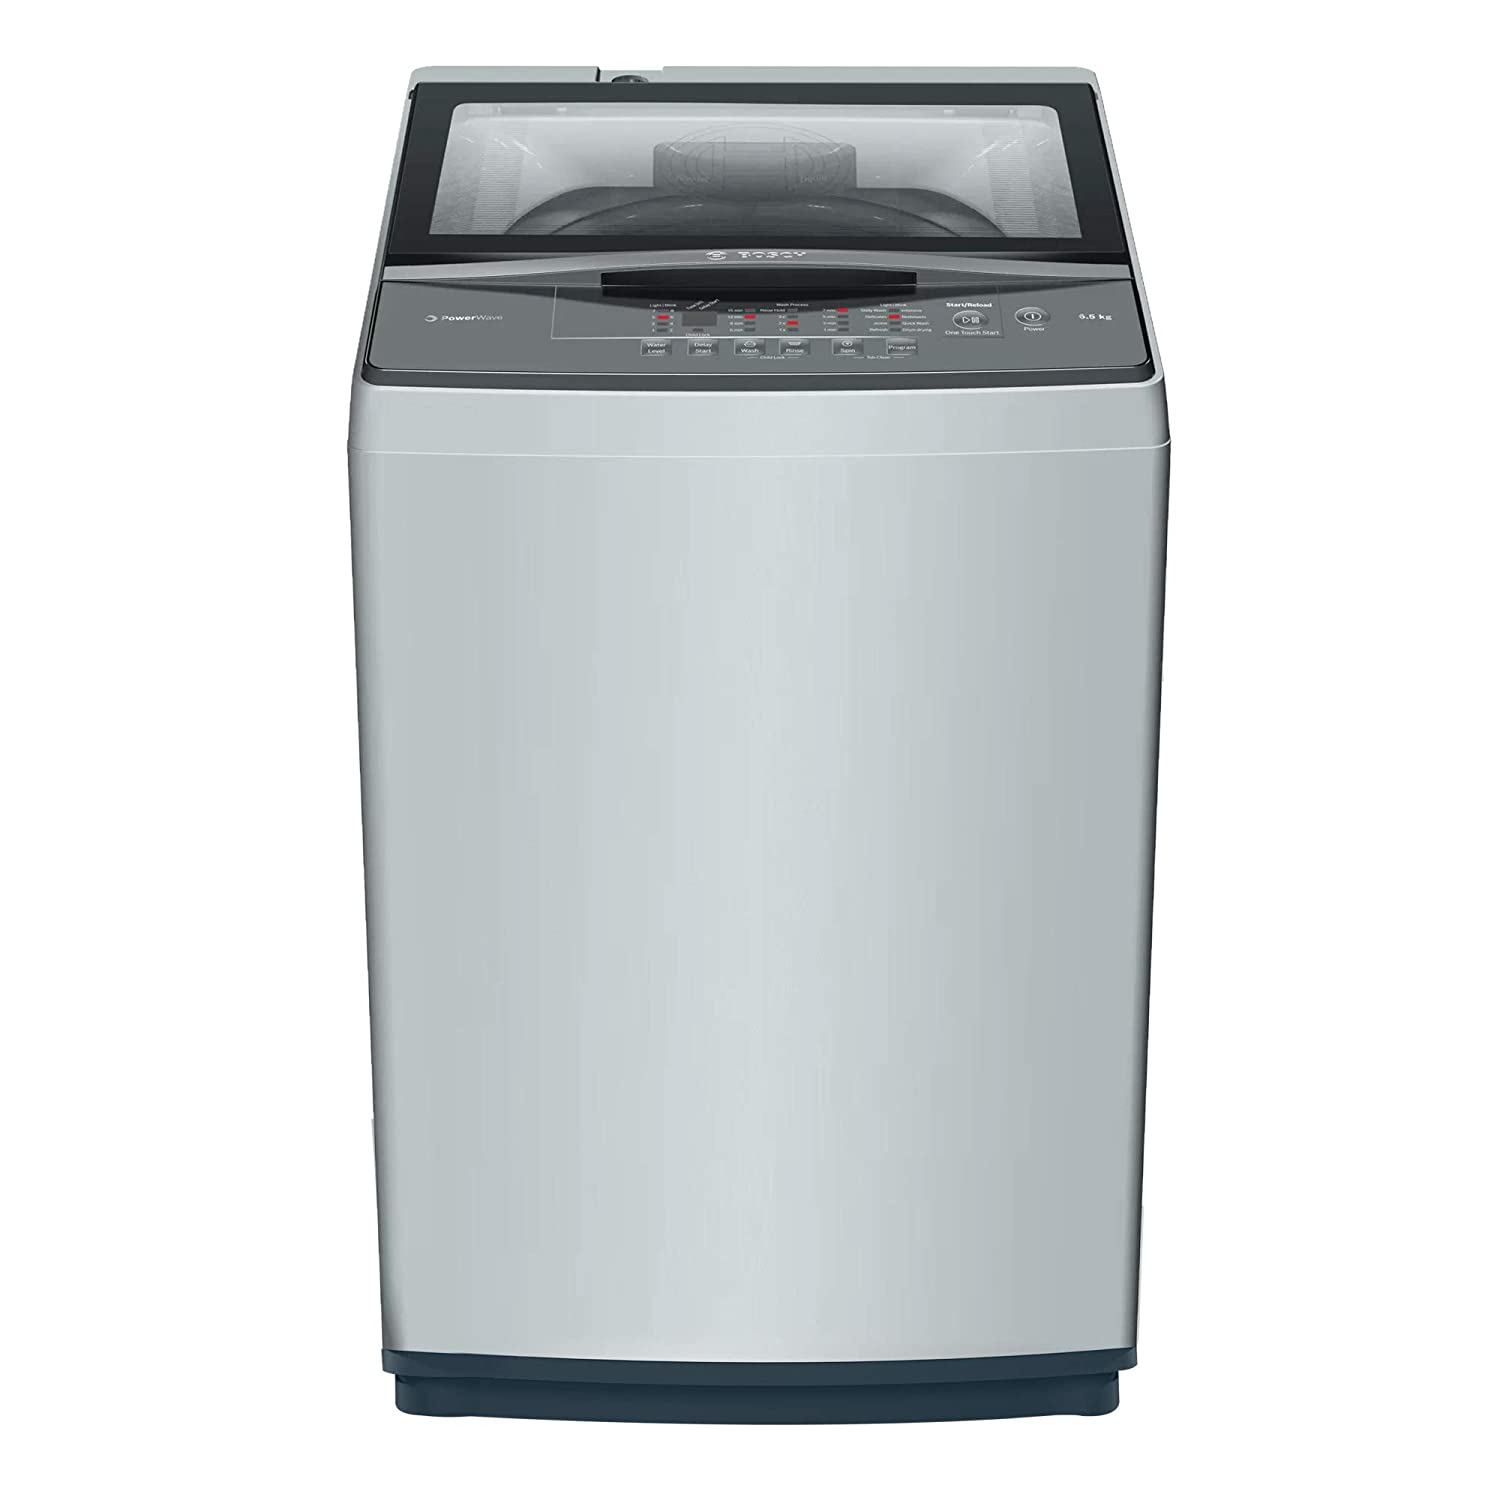 Bosch Fully Automatic Top Loading Washing Machine-6.5kg